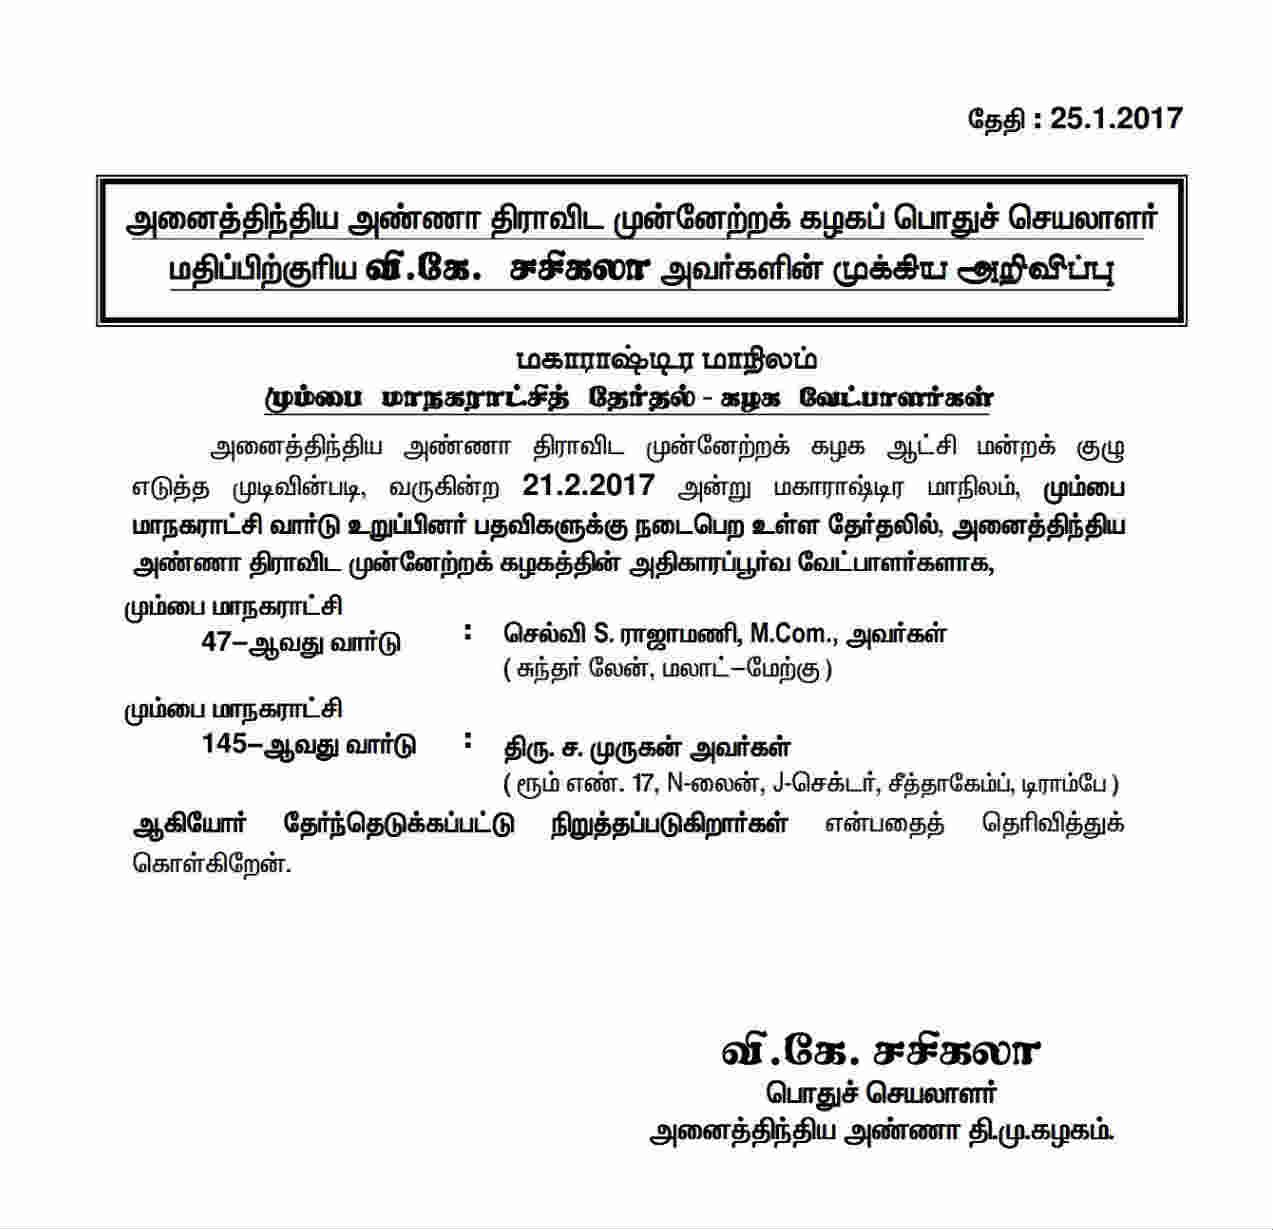 Sasikala's first candidate list